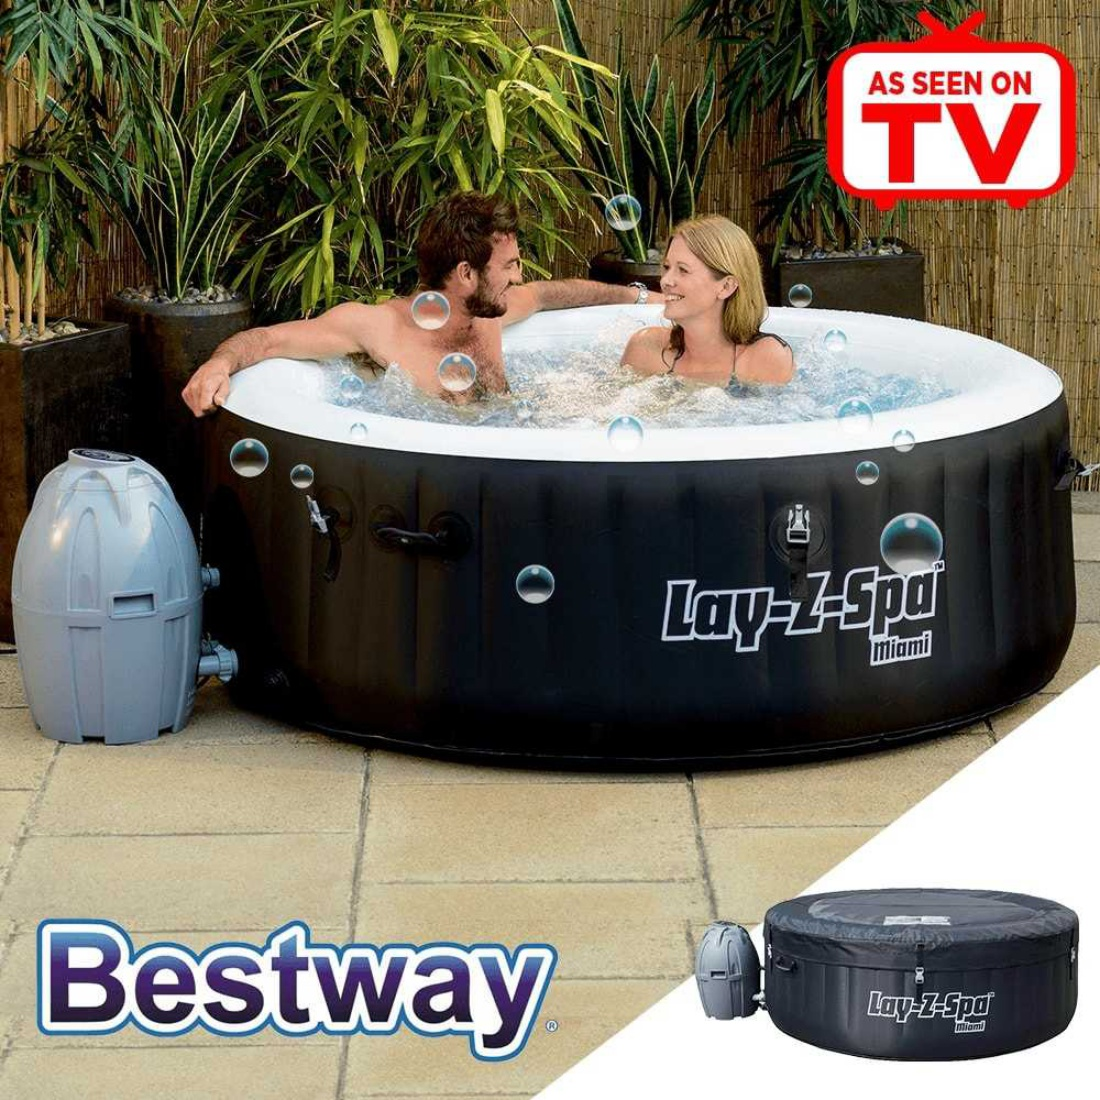 Bestway Lay-Z-Spa MIAMI - Heated Hot Tub Spa Massage - 81 Jets - 2 to 4 People